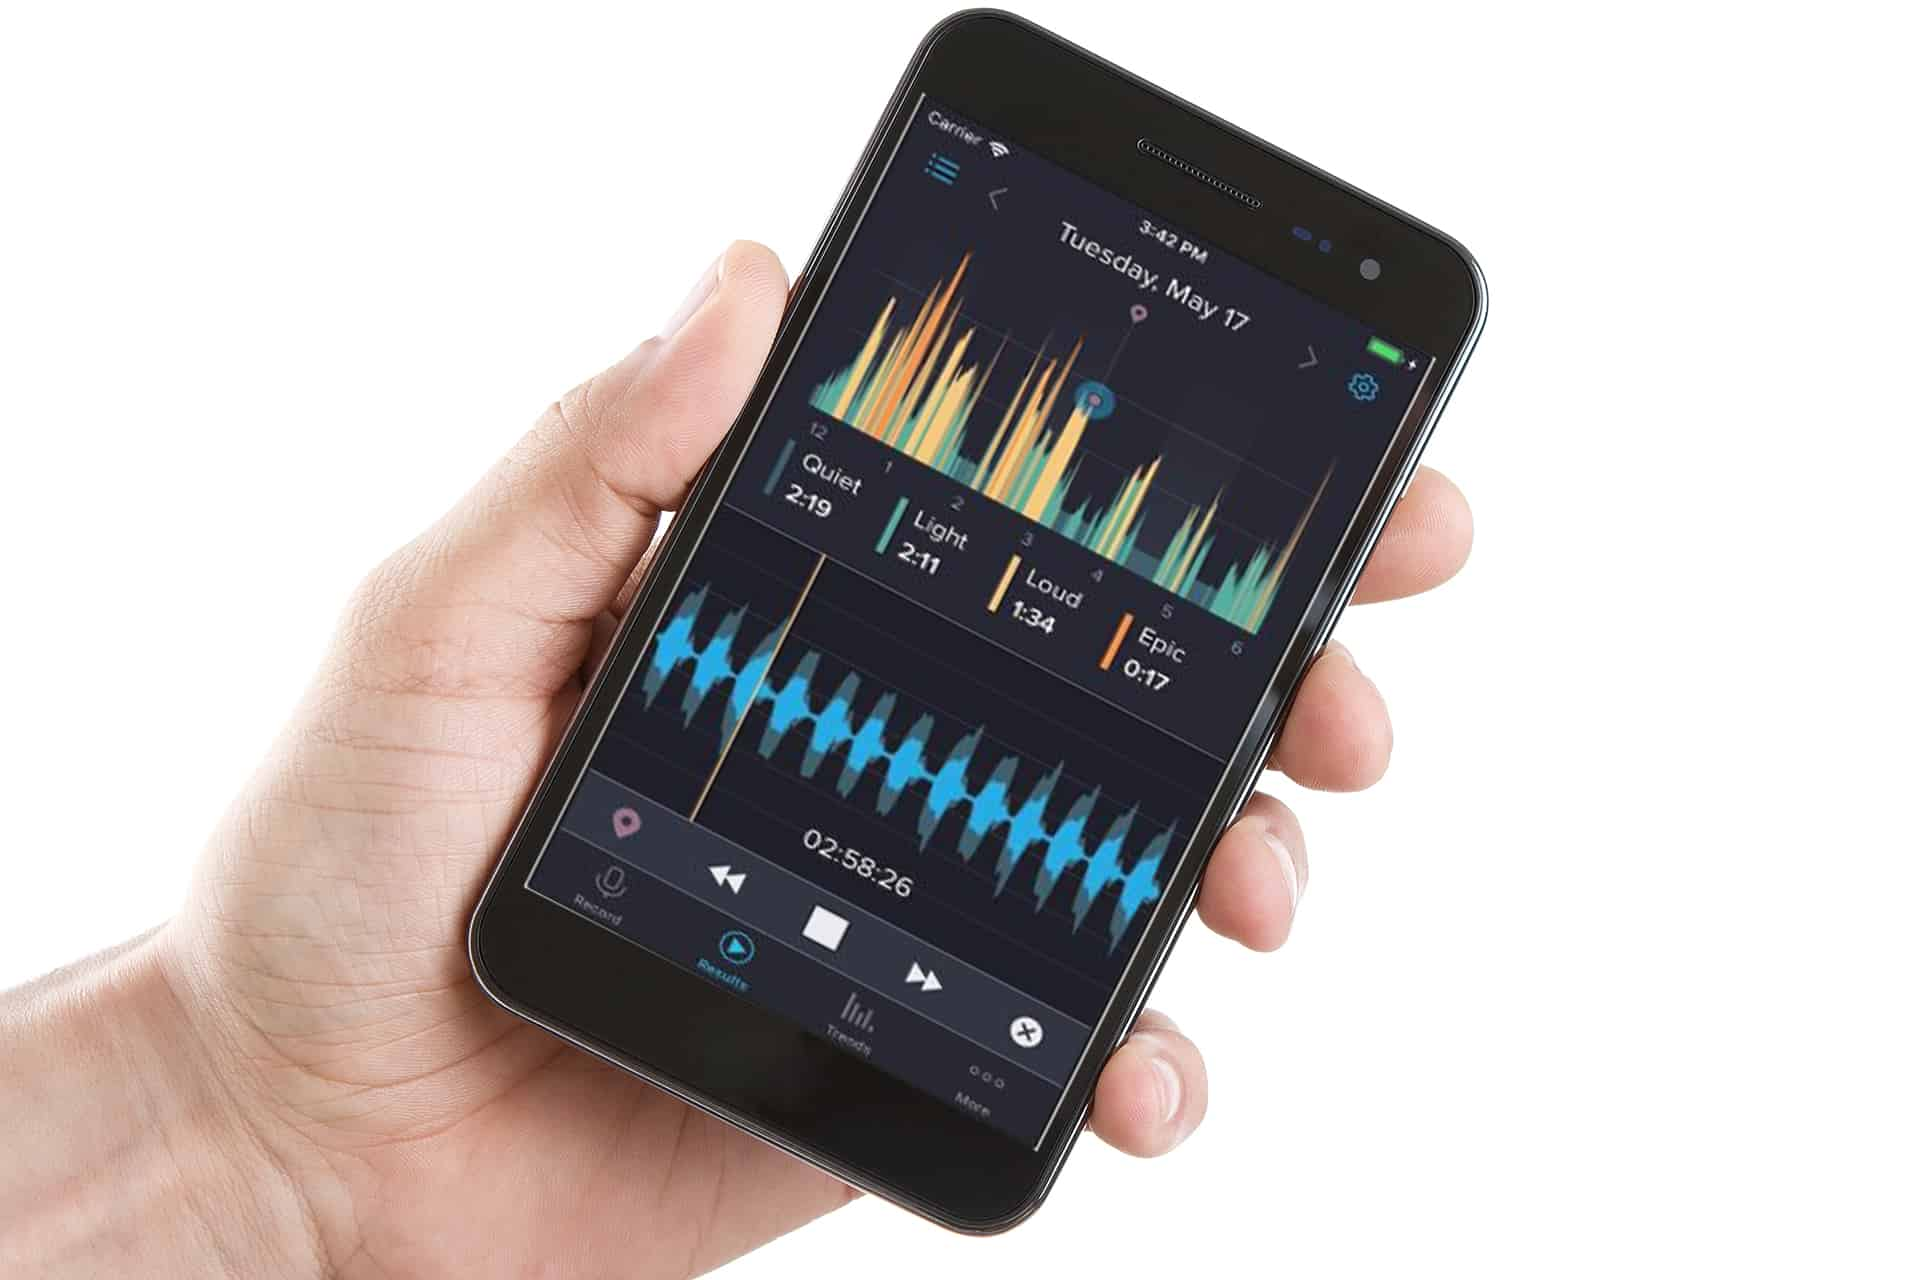 Viewing snoring app on mobile phone